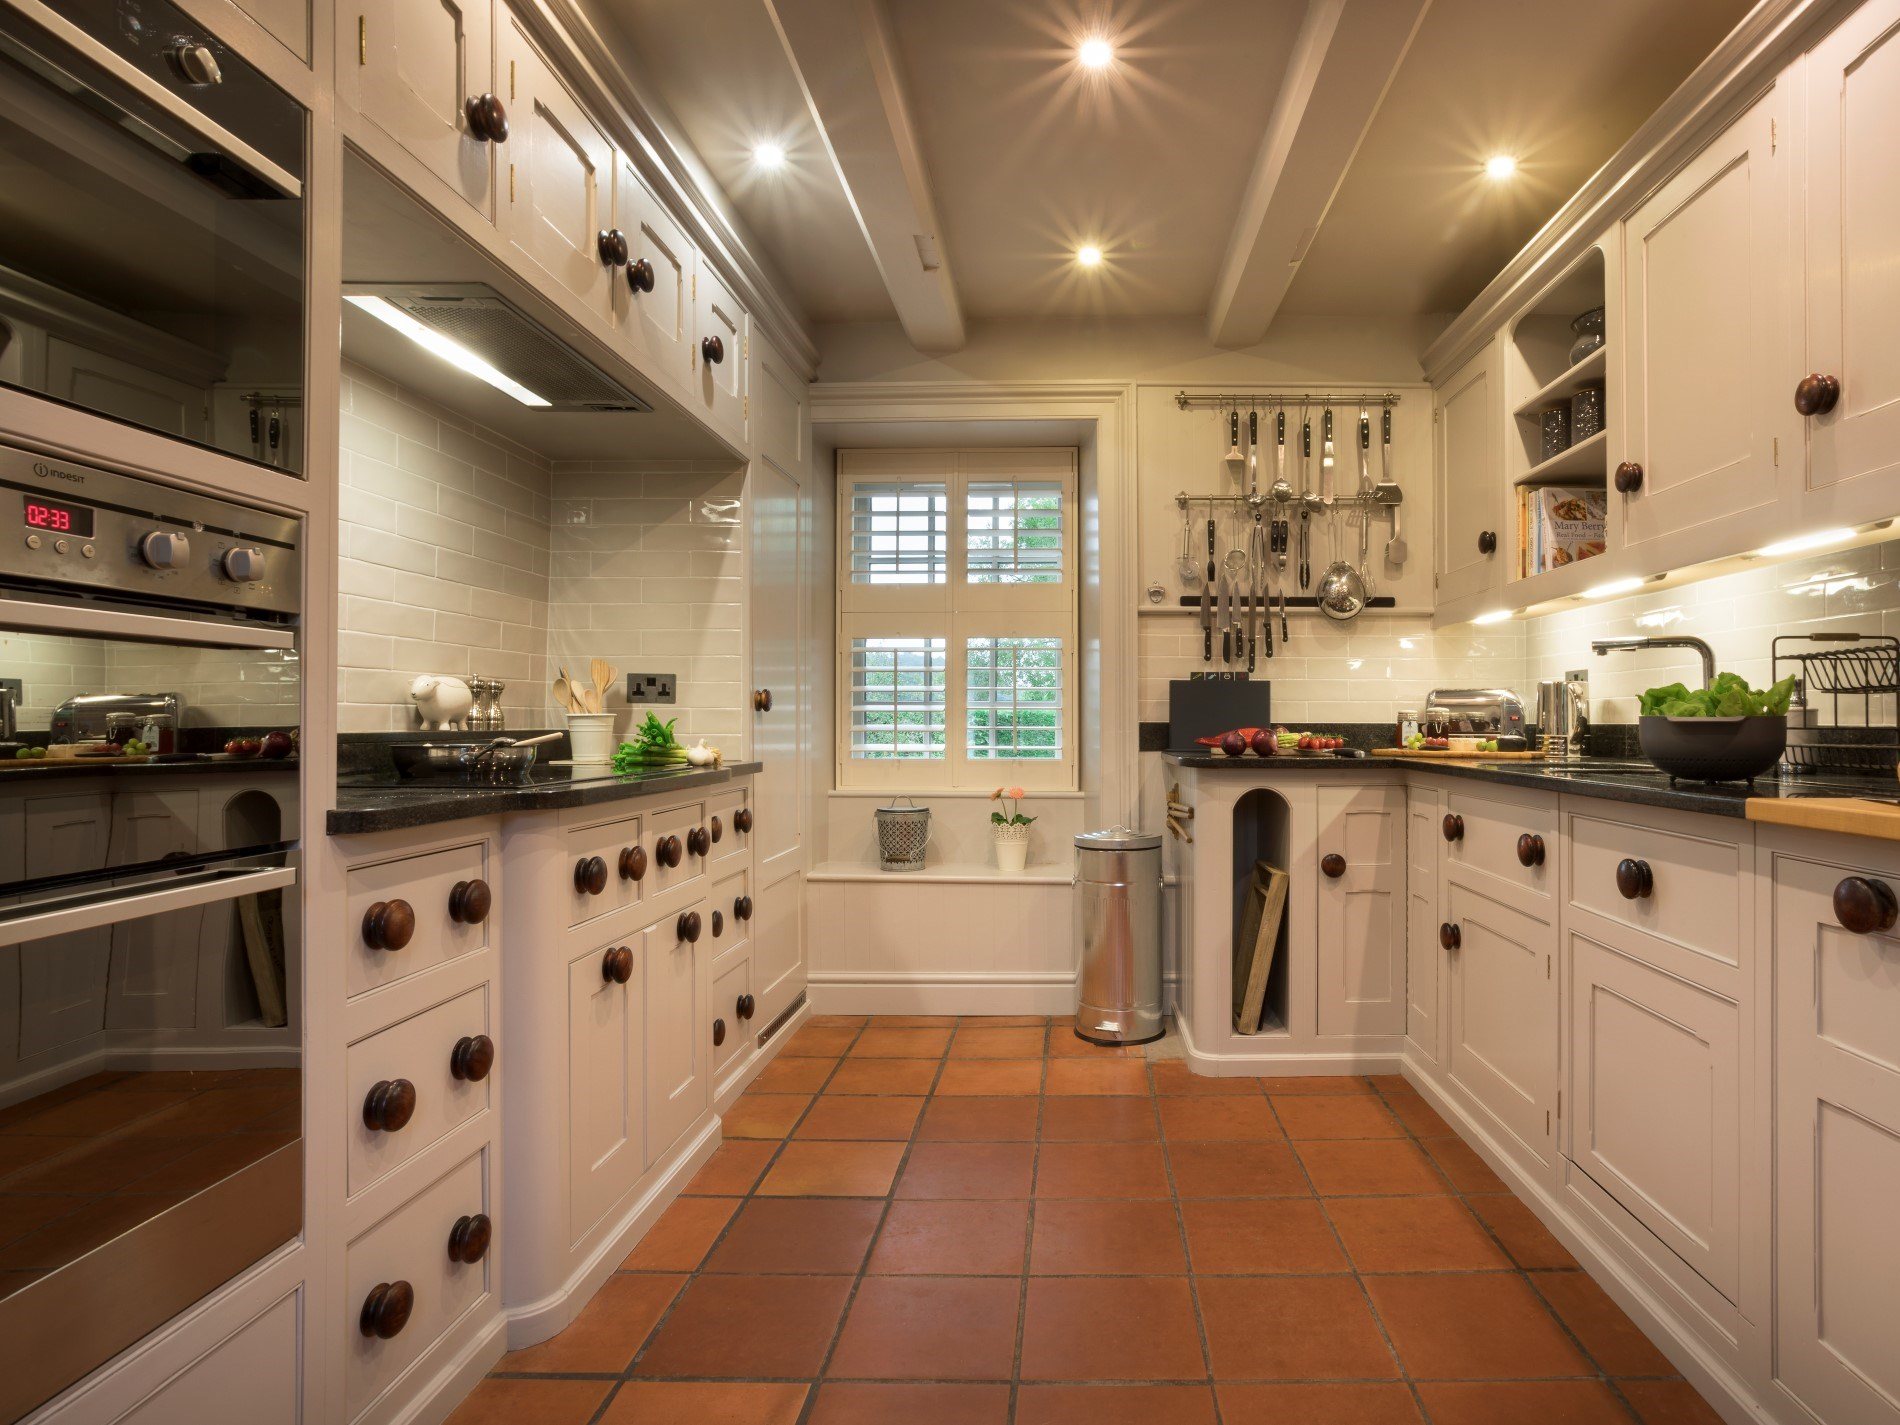 5 Bedroom Cottage in Near Kirkby Lonsdale, Scottish Borders